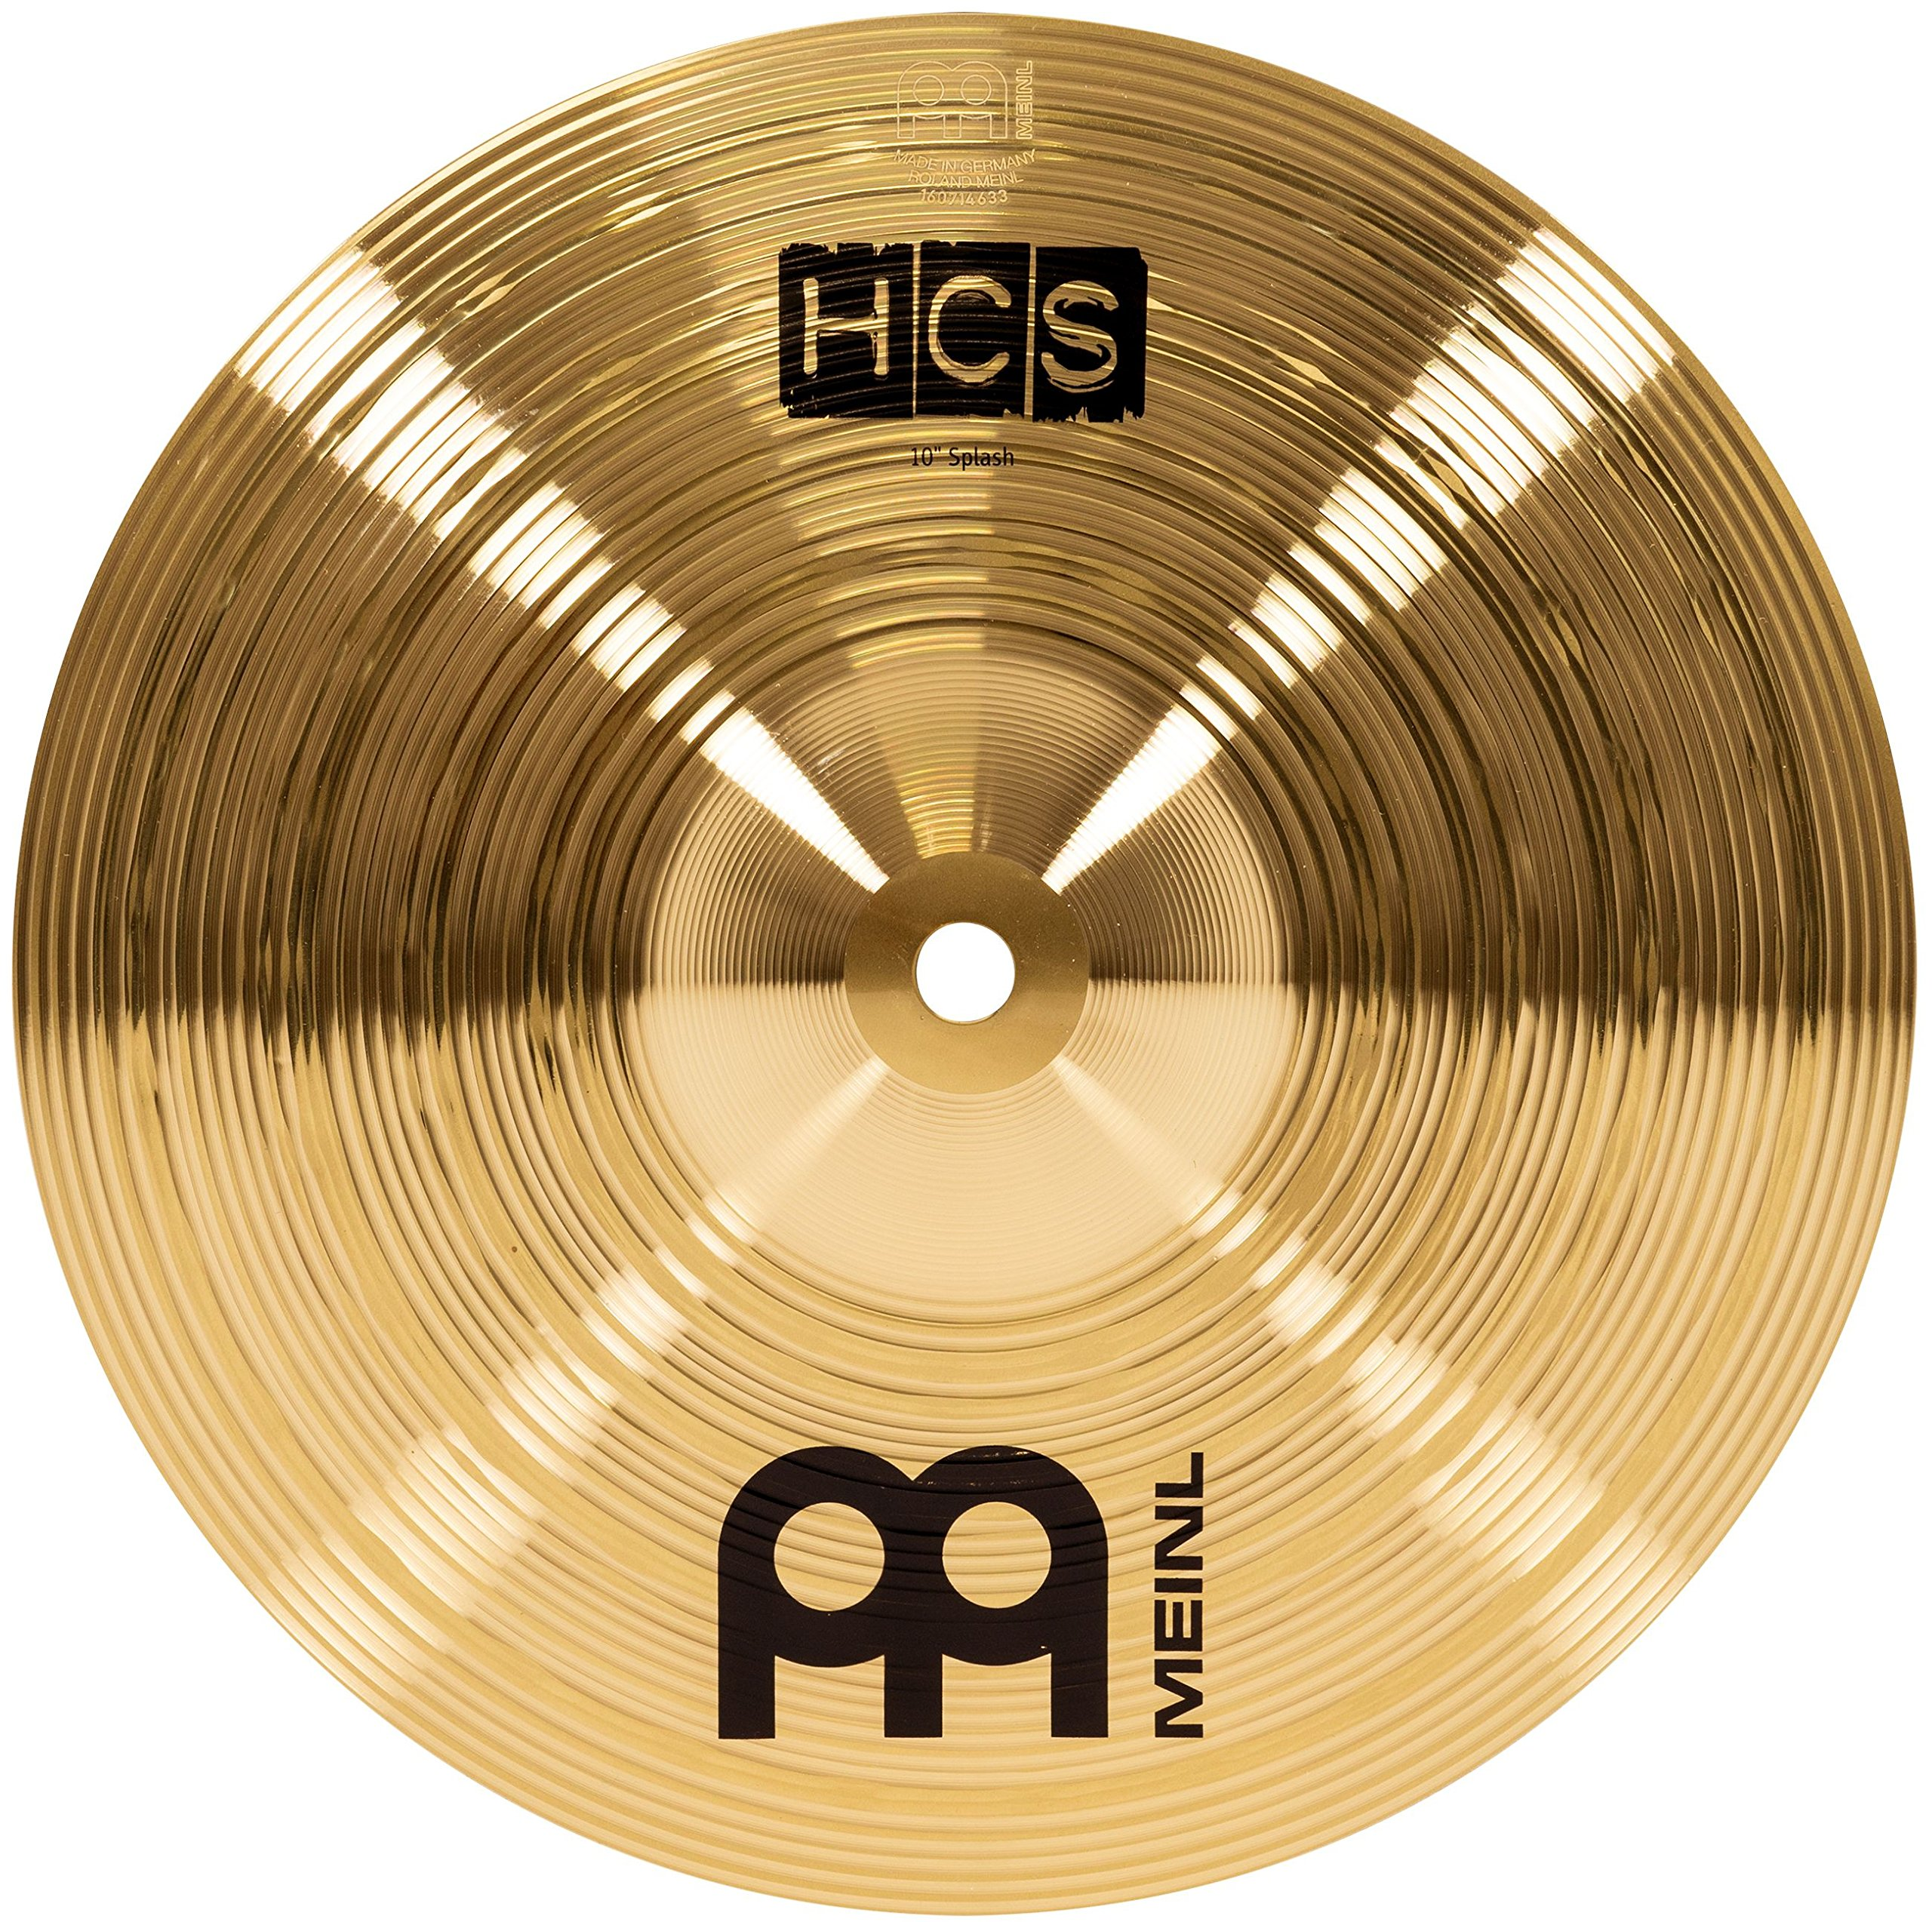 Meinl 10'' Splash Cymbal - HCS Traditional Finish Brass for Drum Set, Made In Germany, 2-YEAR WARRANTY (HCS10S) by Meinl Cymbals